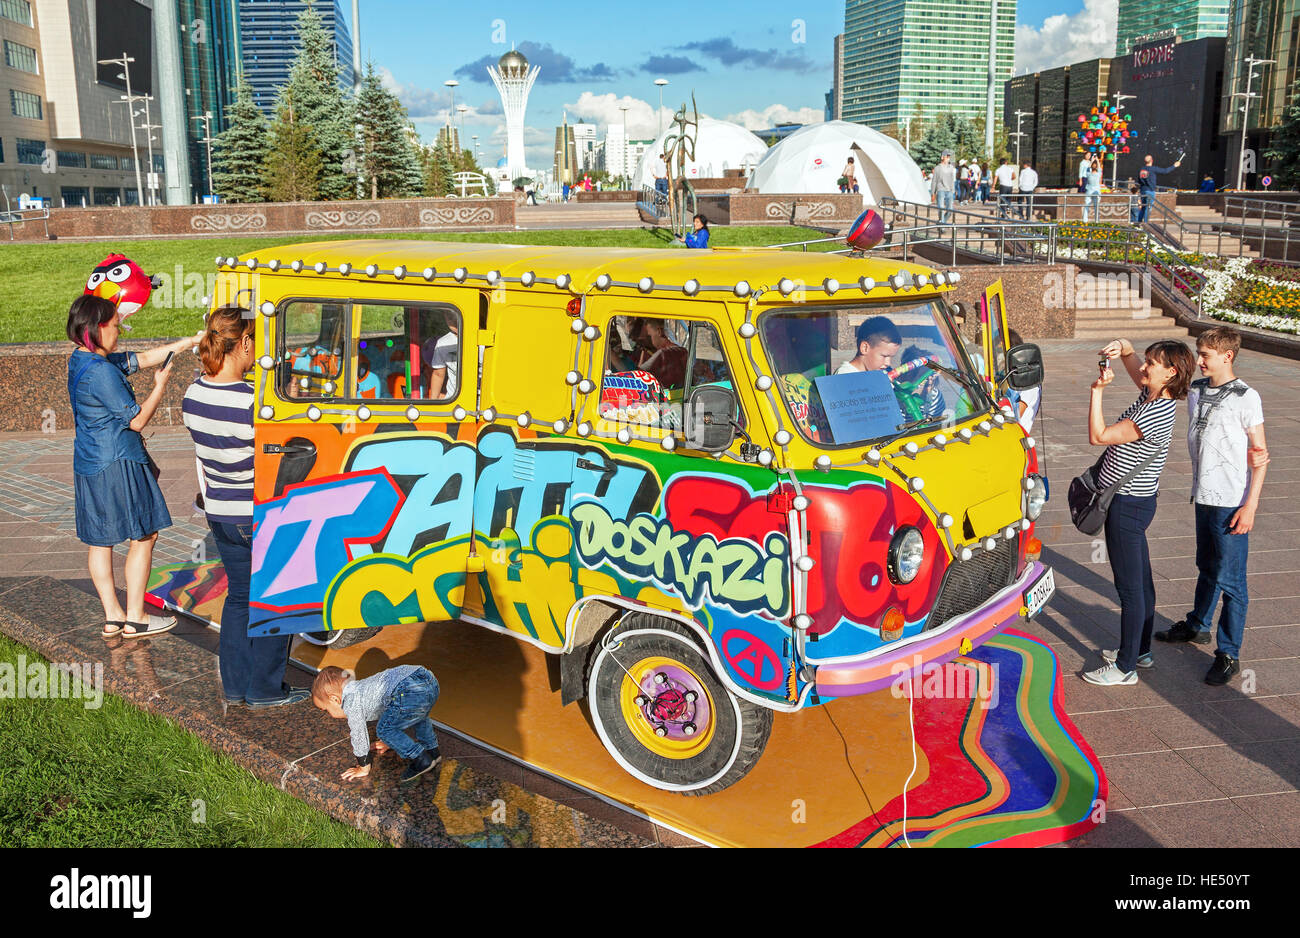 ASTANA, KAZAKHSTAN - JULY 03, 2016: art installation on the background of the famous Bayterek tower in downtown - Stock Image